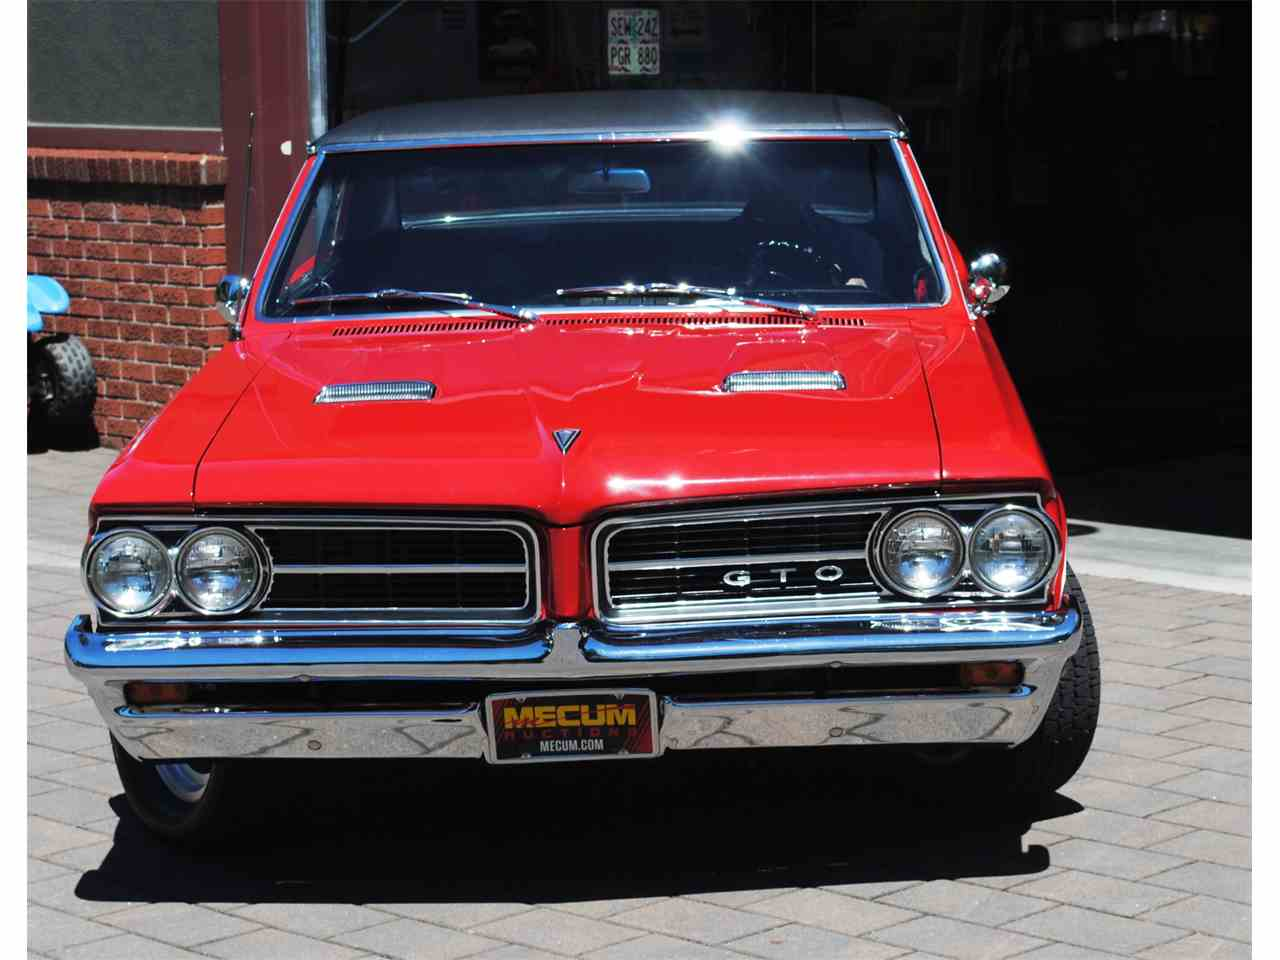 Large Picture of Classic '64 GTO located in Oregon - $45,000.00 Offered by a Private Seller - LE7M